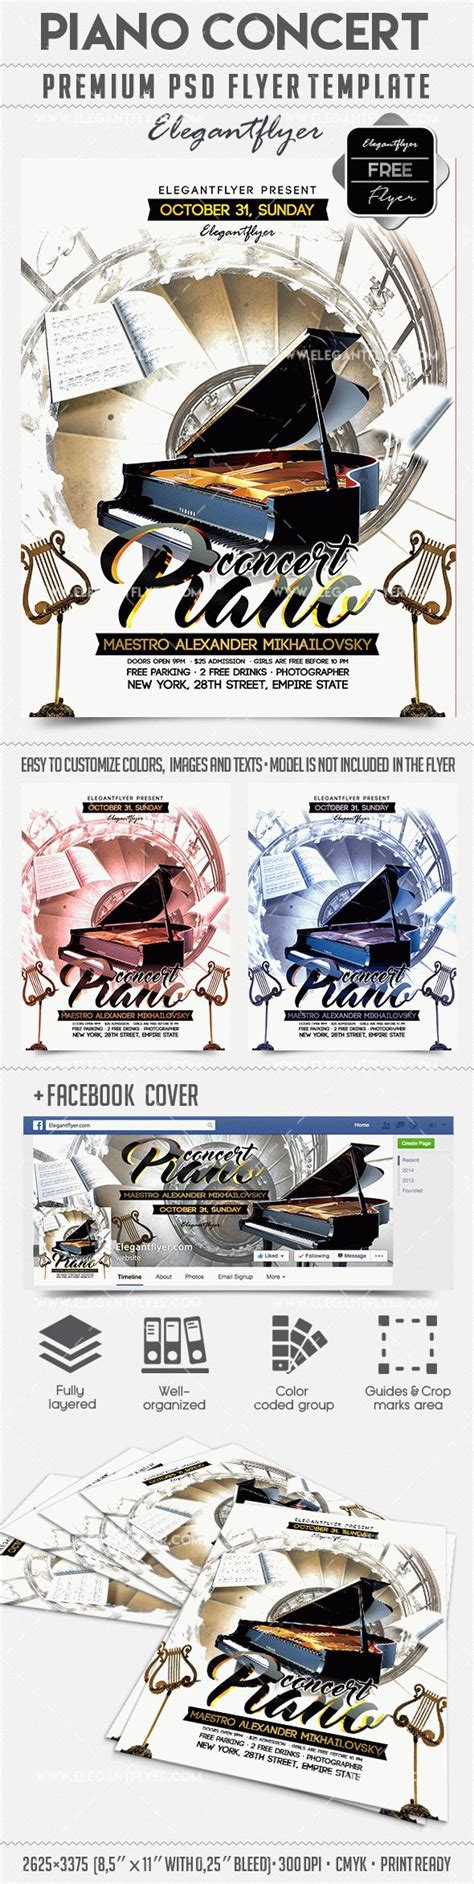 Download Piano Concert Facebook Cover Flyer Template Piano Recital Poster Template